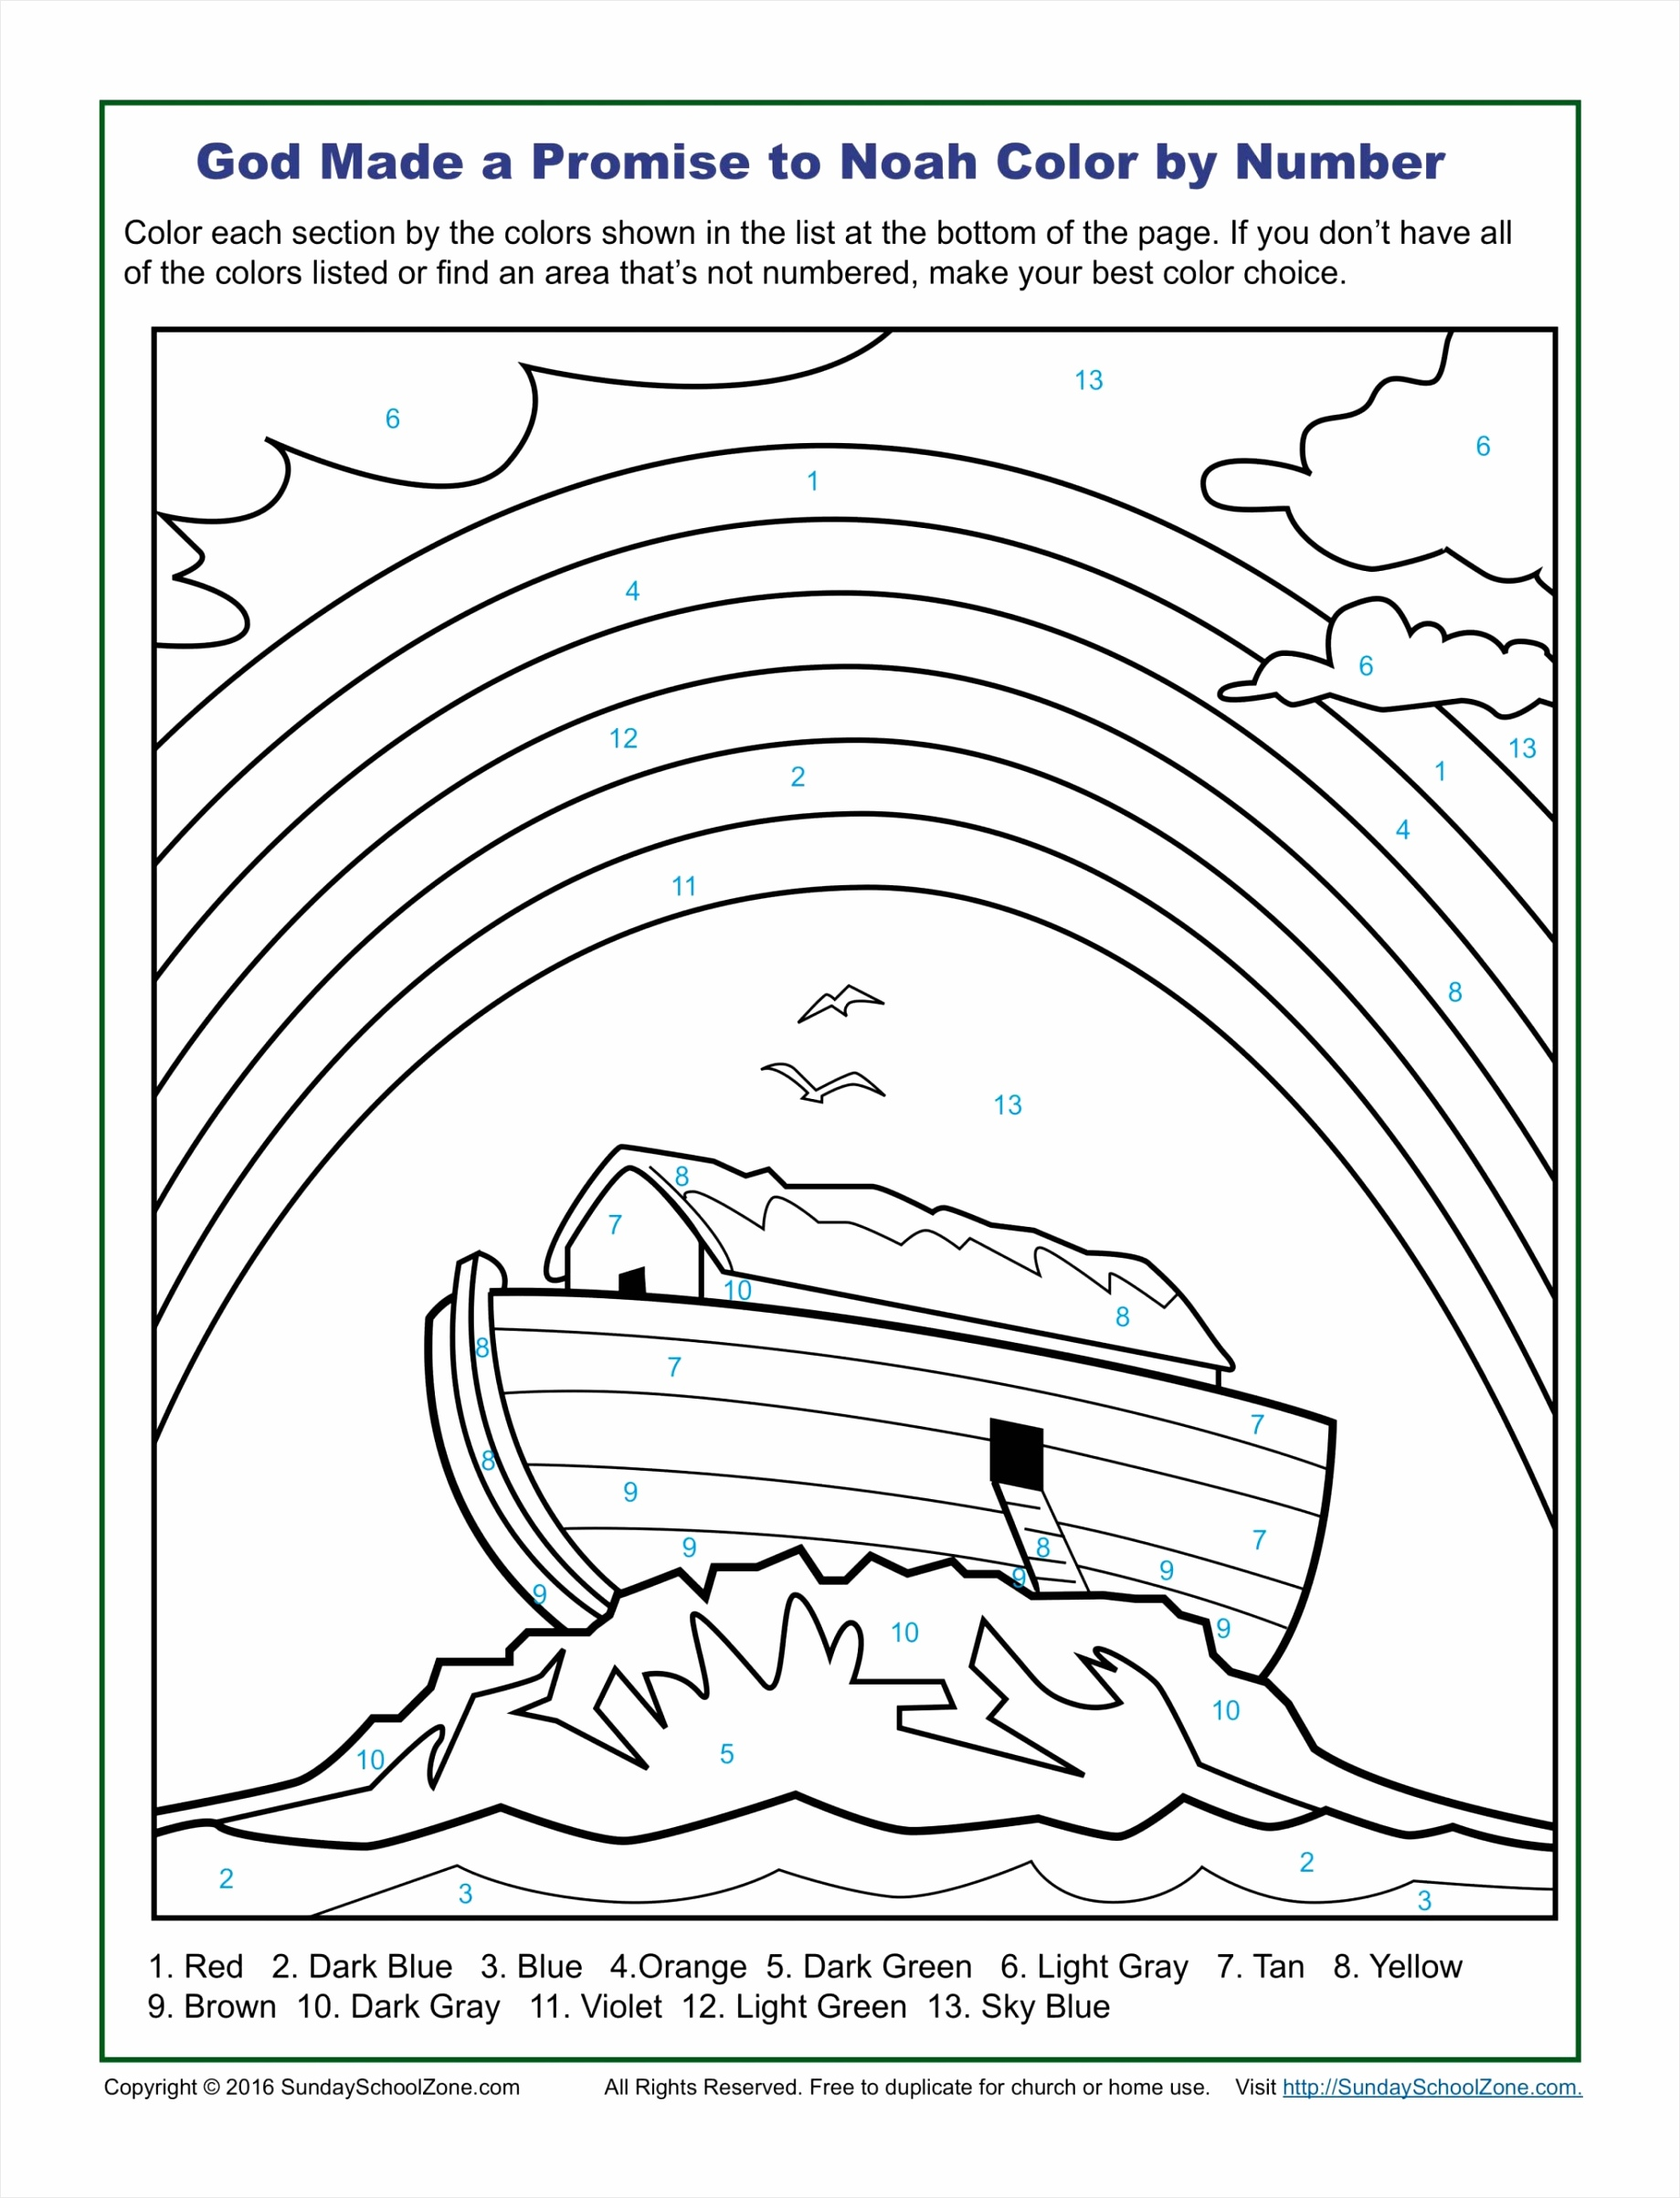 fabulous childrens coloring bible image ideas printable color by number pages on sunday school zone god made a promise to noah color by number scaled ouirs